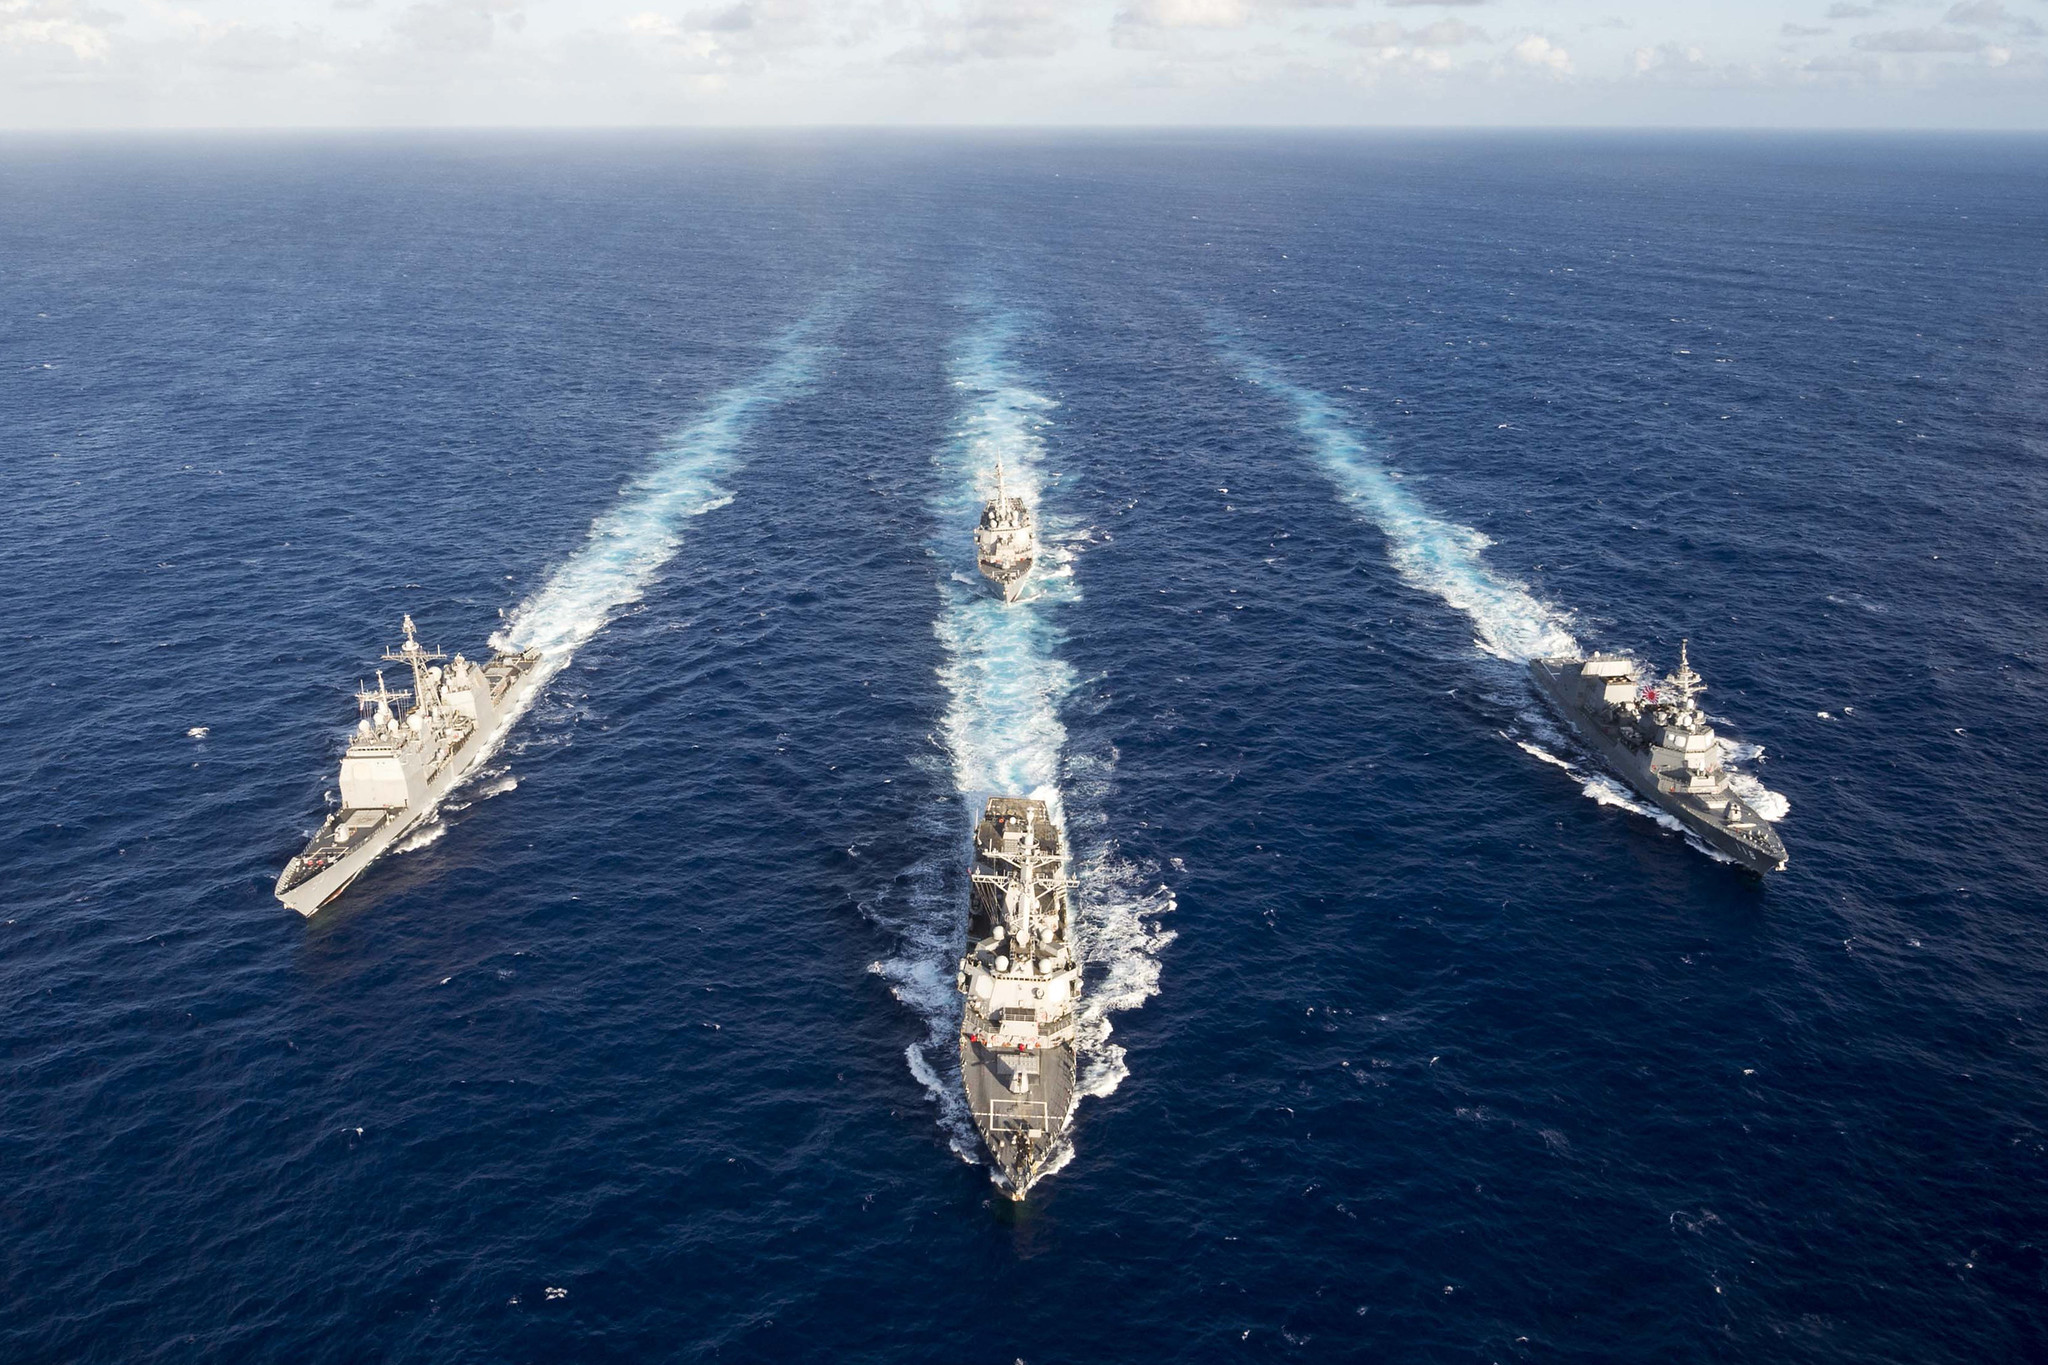 US Navy – USS Mustin – Regional Security – A Ready, Credible Force